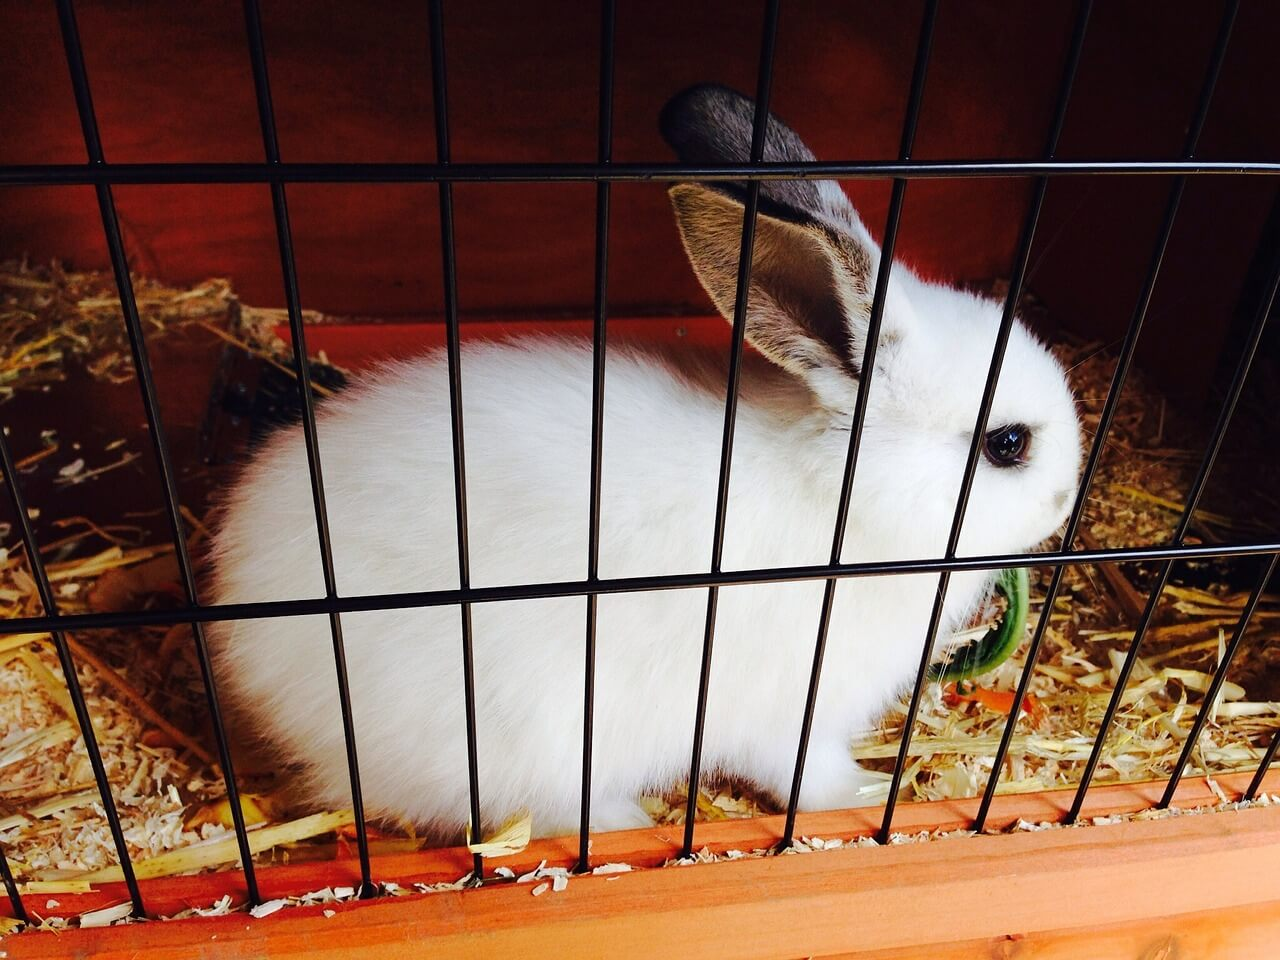 a white rabbit inside a wired cage with wooden shavings